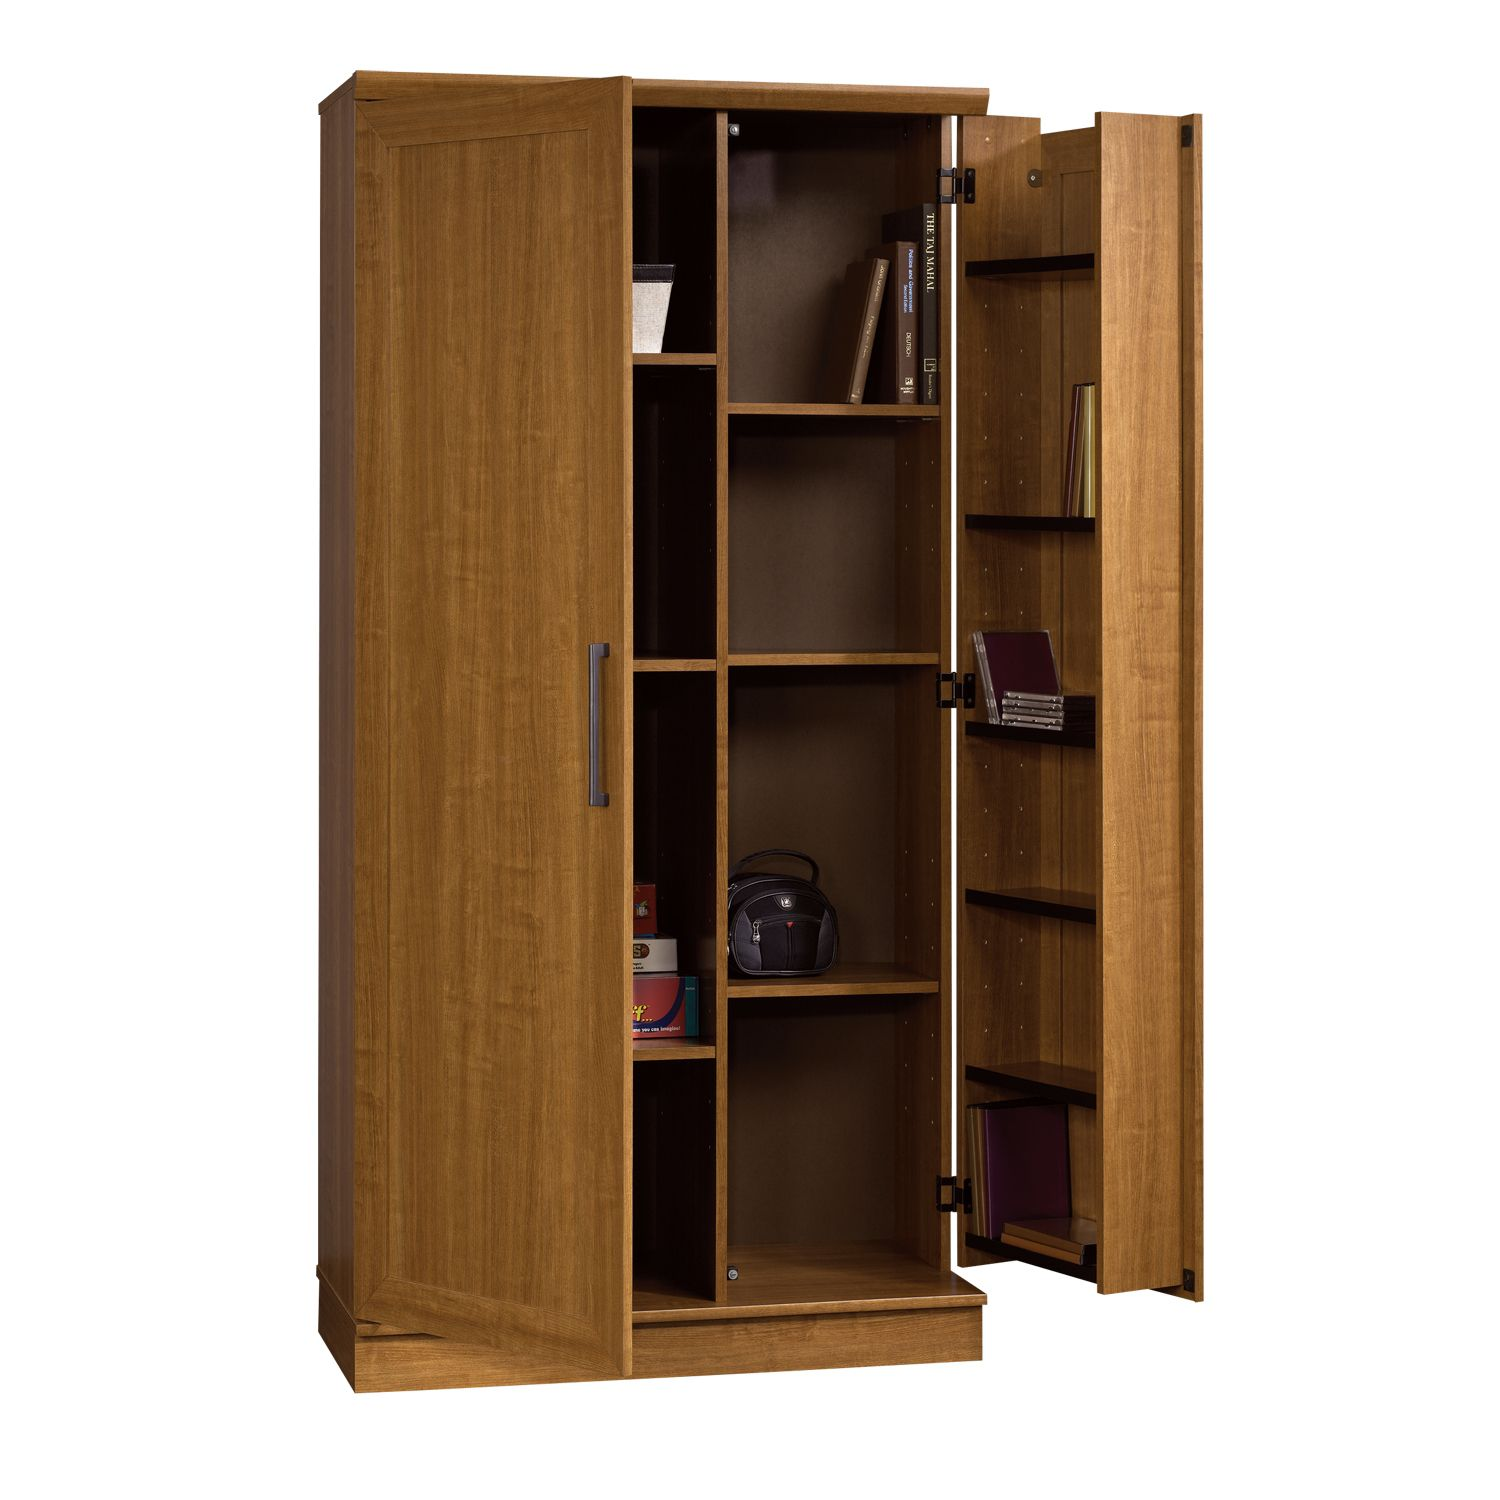 Home-Plus-Storage-Cabinet-Swing-Out-Door